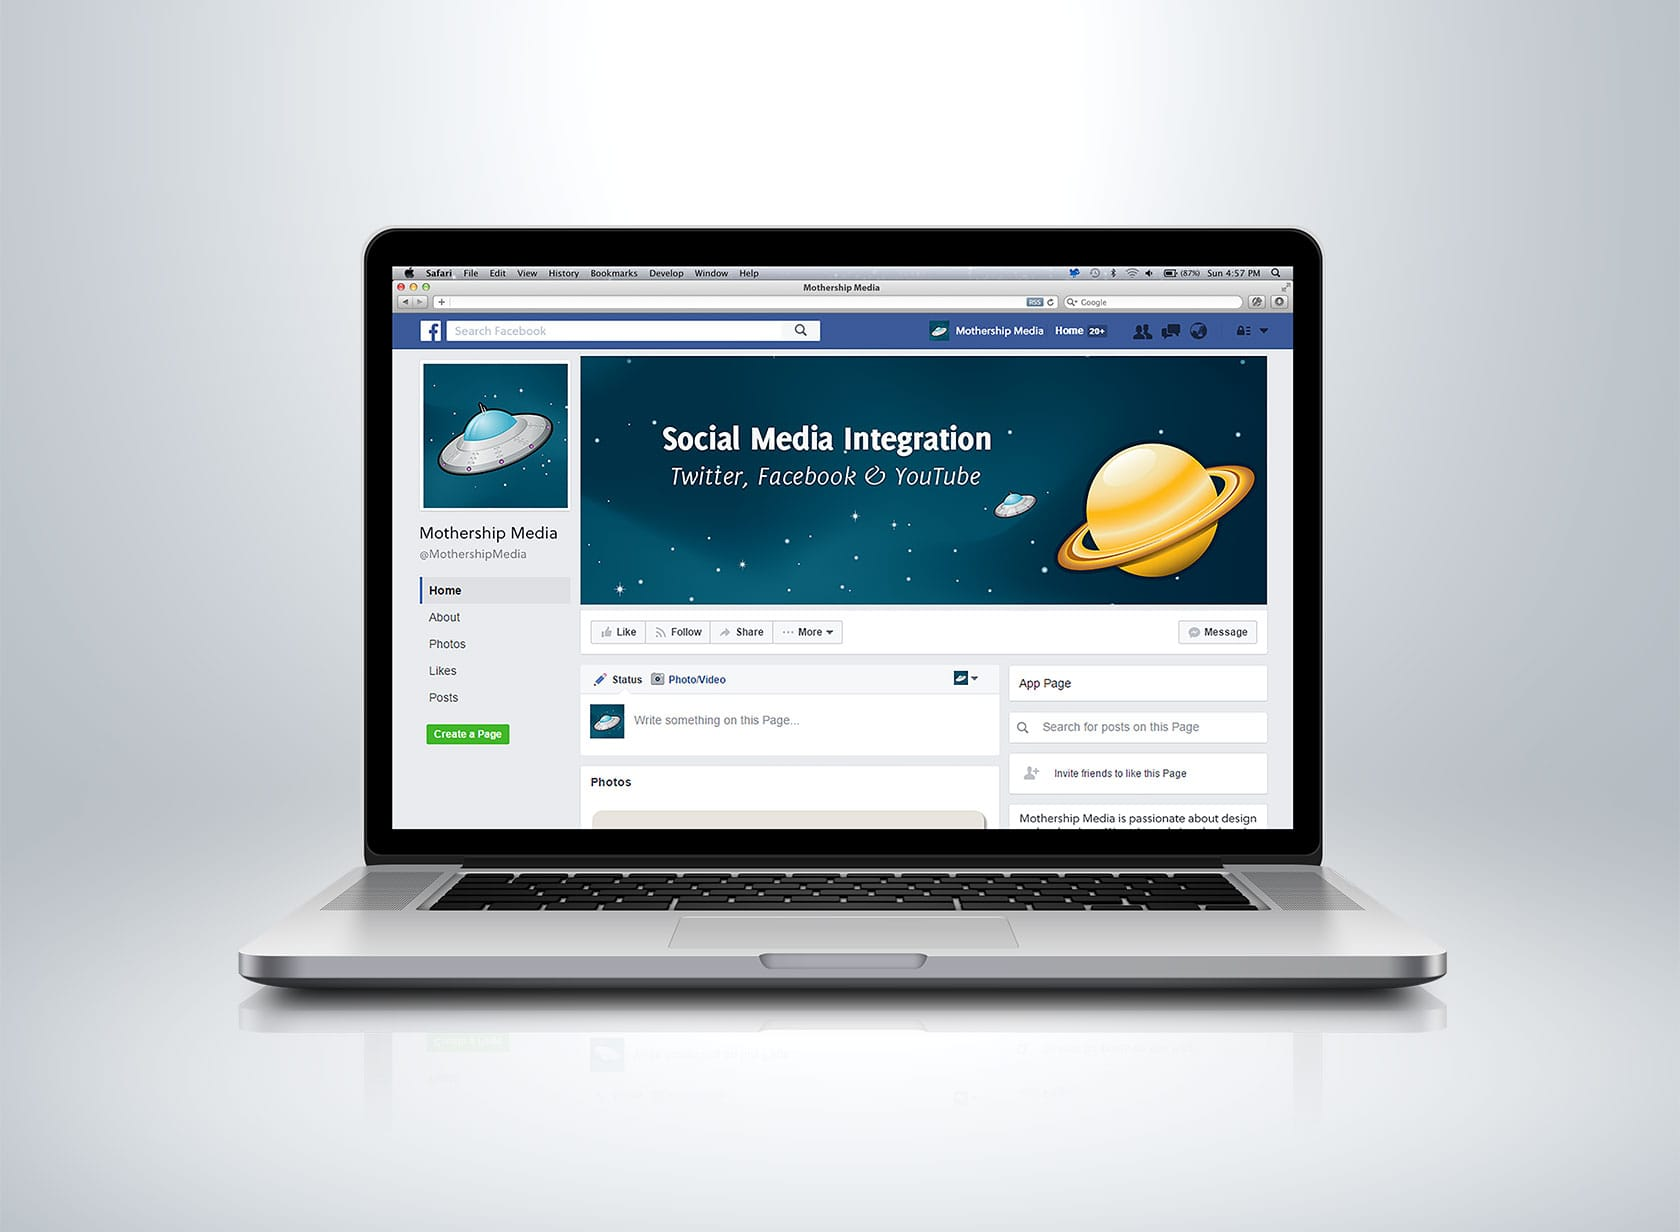 MM FB Project Image 03 - Social Media Branding - Facebook Business Page, Cover Image 3